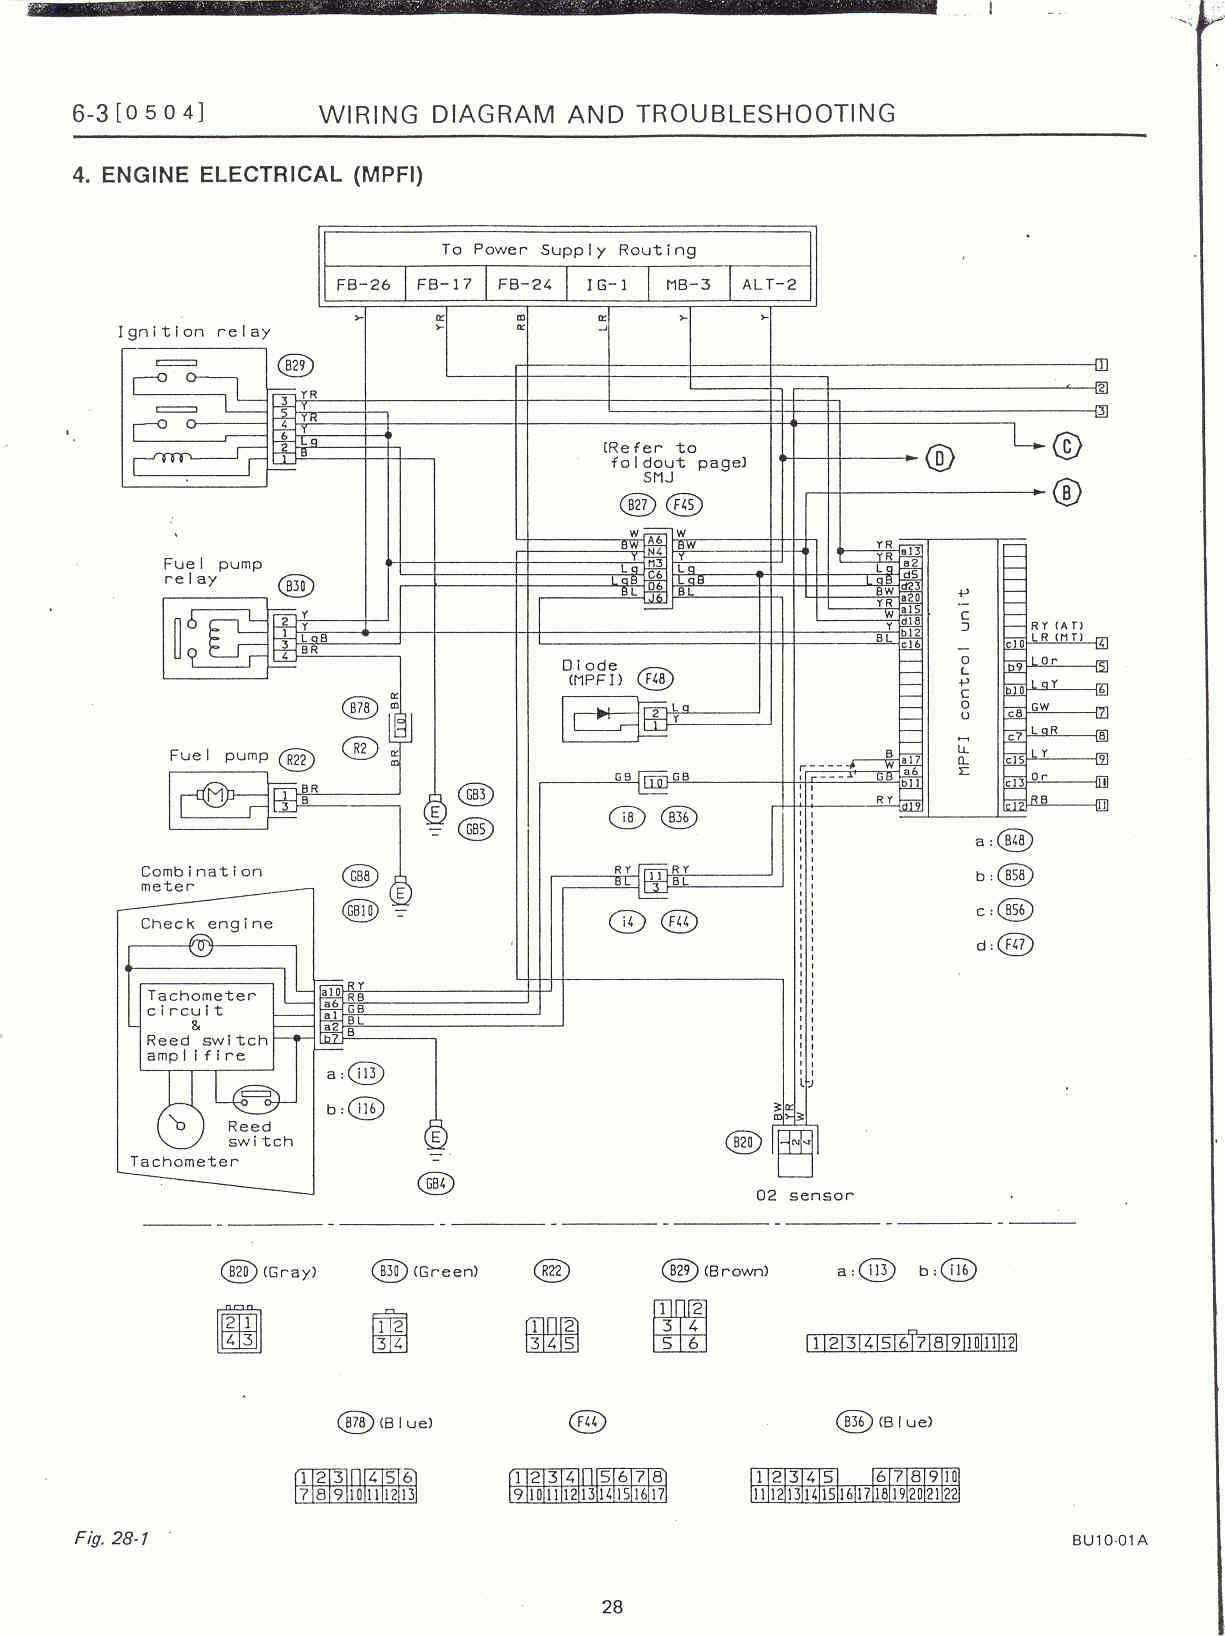 hight resolution of 1992 subaru svx wiring diagram wiring diagram database subaru engine wiring diagram fuel delivery issues